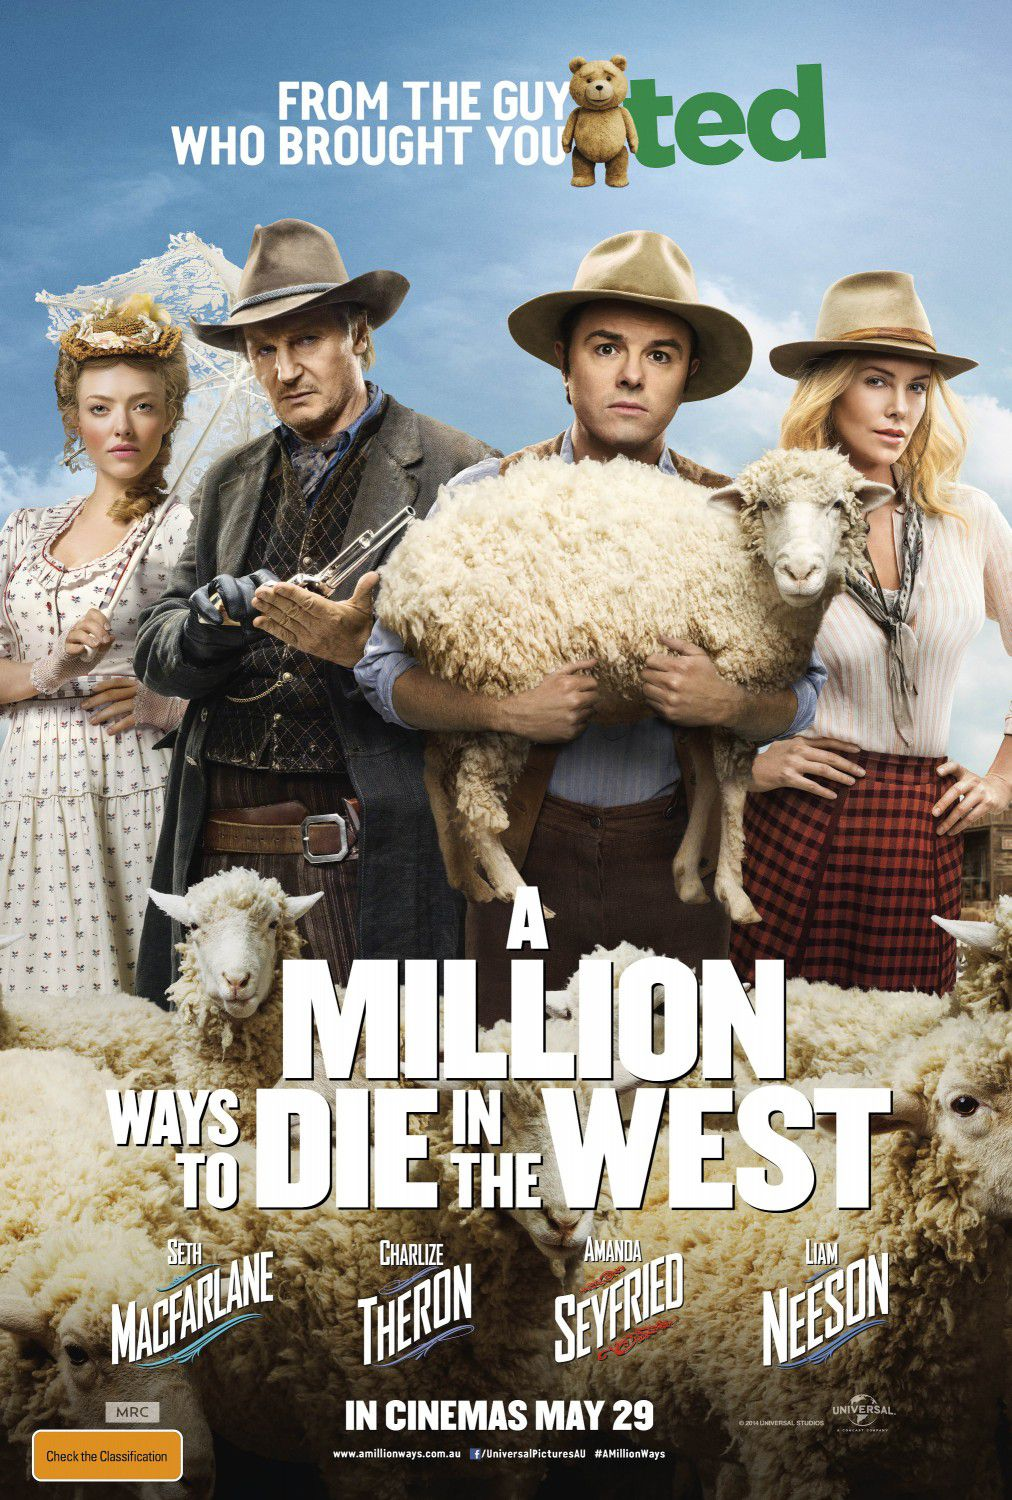 Million ways to Die in the West - Un milione di modi per morire nel West - Seth Macfarlane - Charlize Theron - Amanda Seyfried - Liam Neeson - film poster